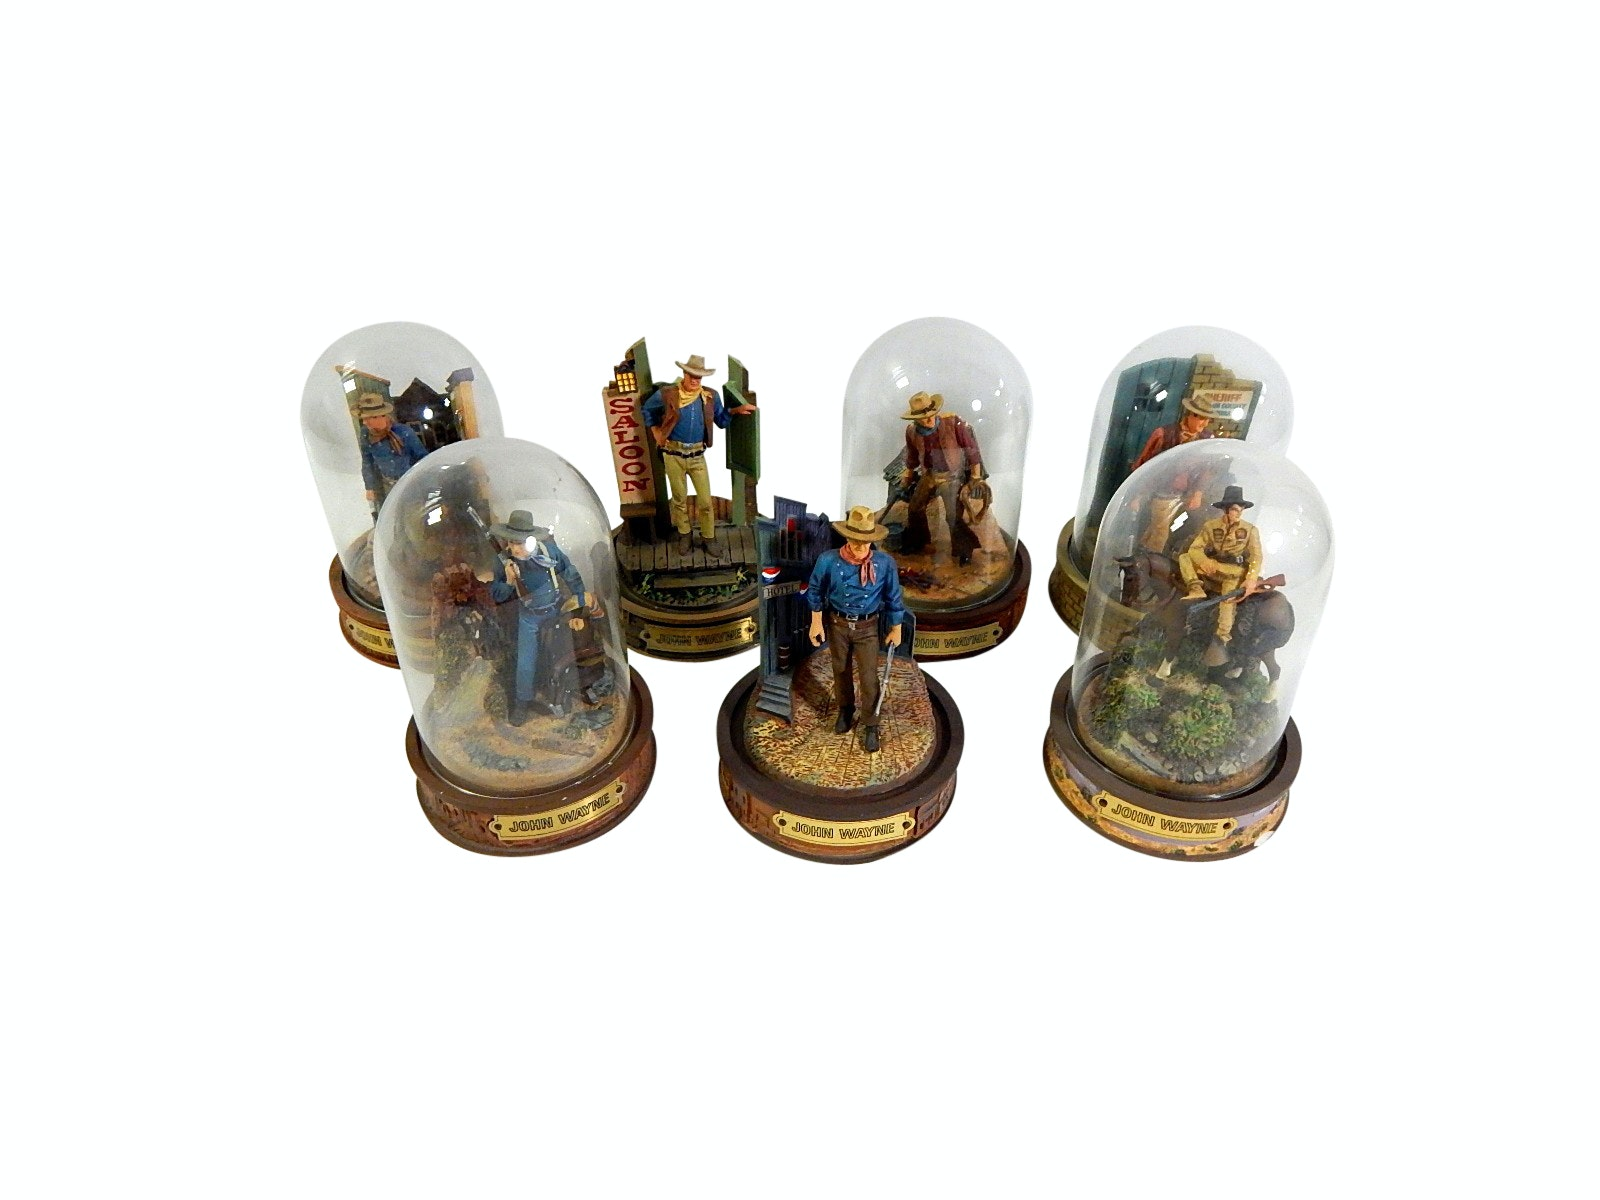 Franklin Mint John Wayne Hand Painted Limited Sculptures with Glass Domes